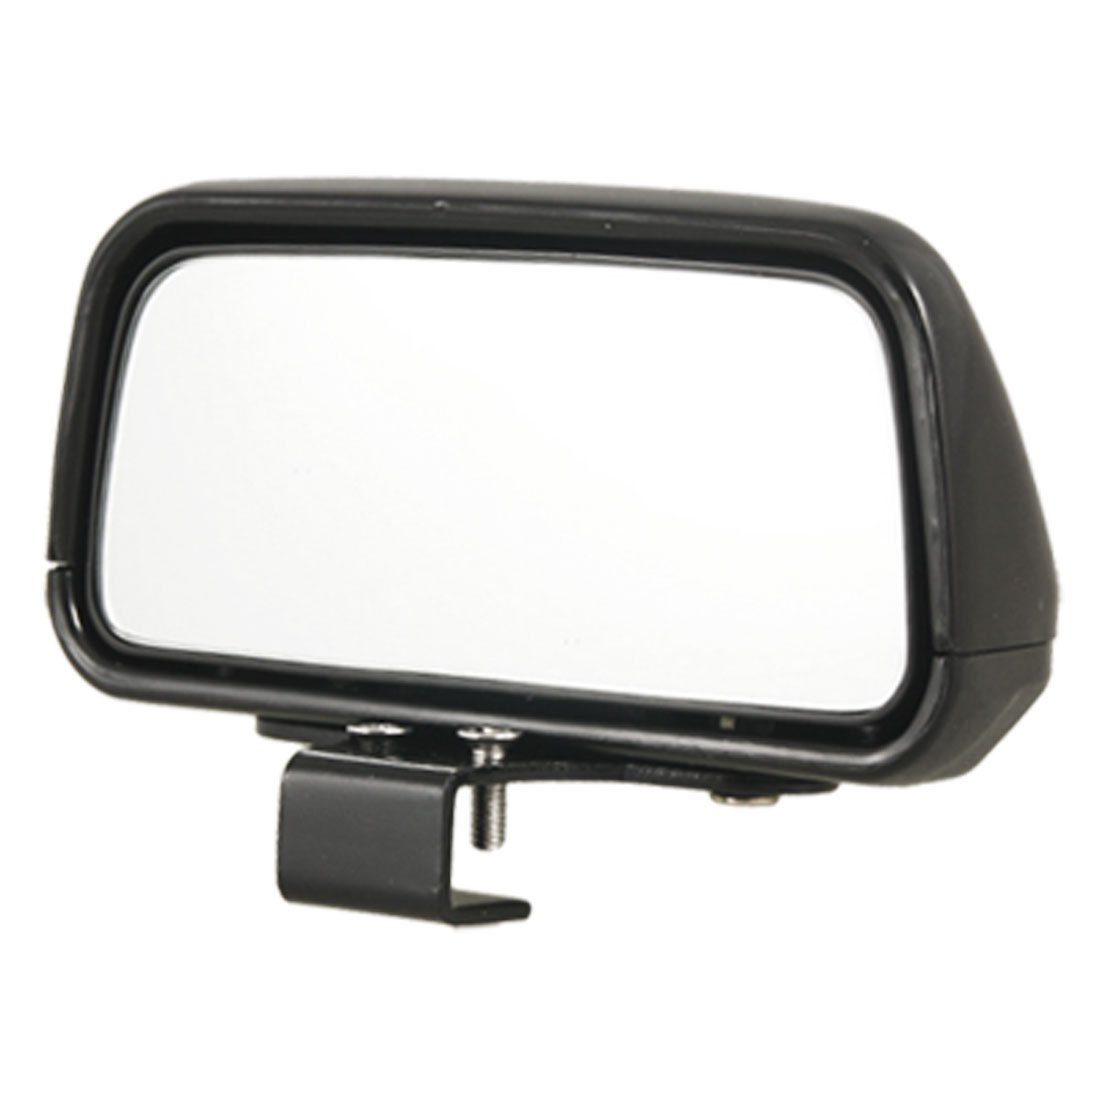 Black Plastic Glass Vehicle Rear View Blind Spot Mirror for Auto Car